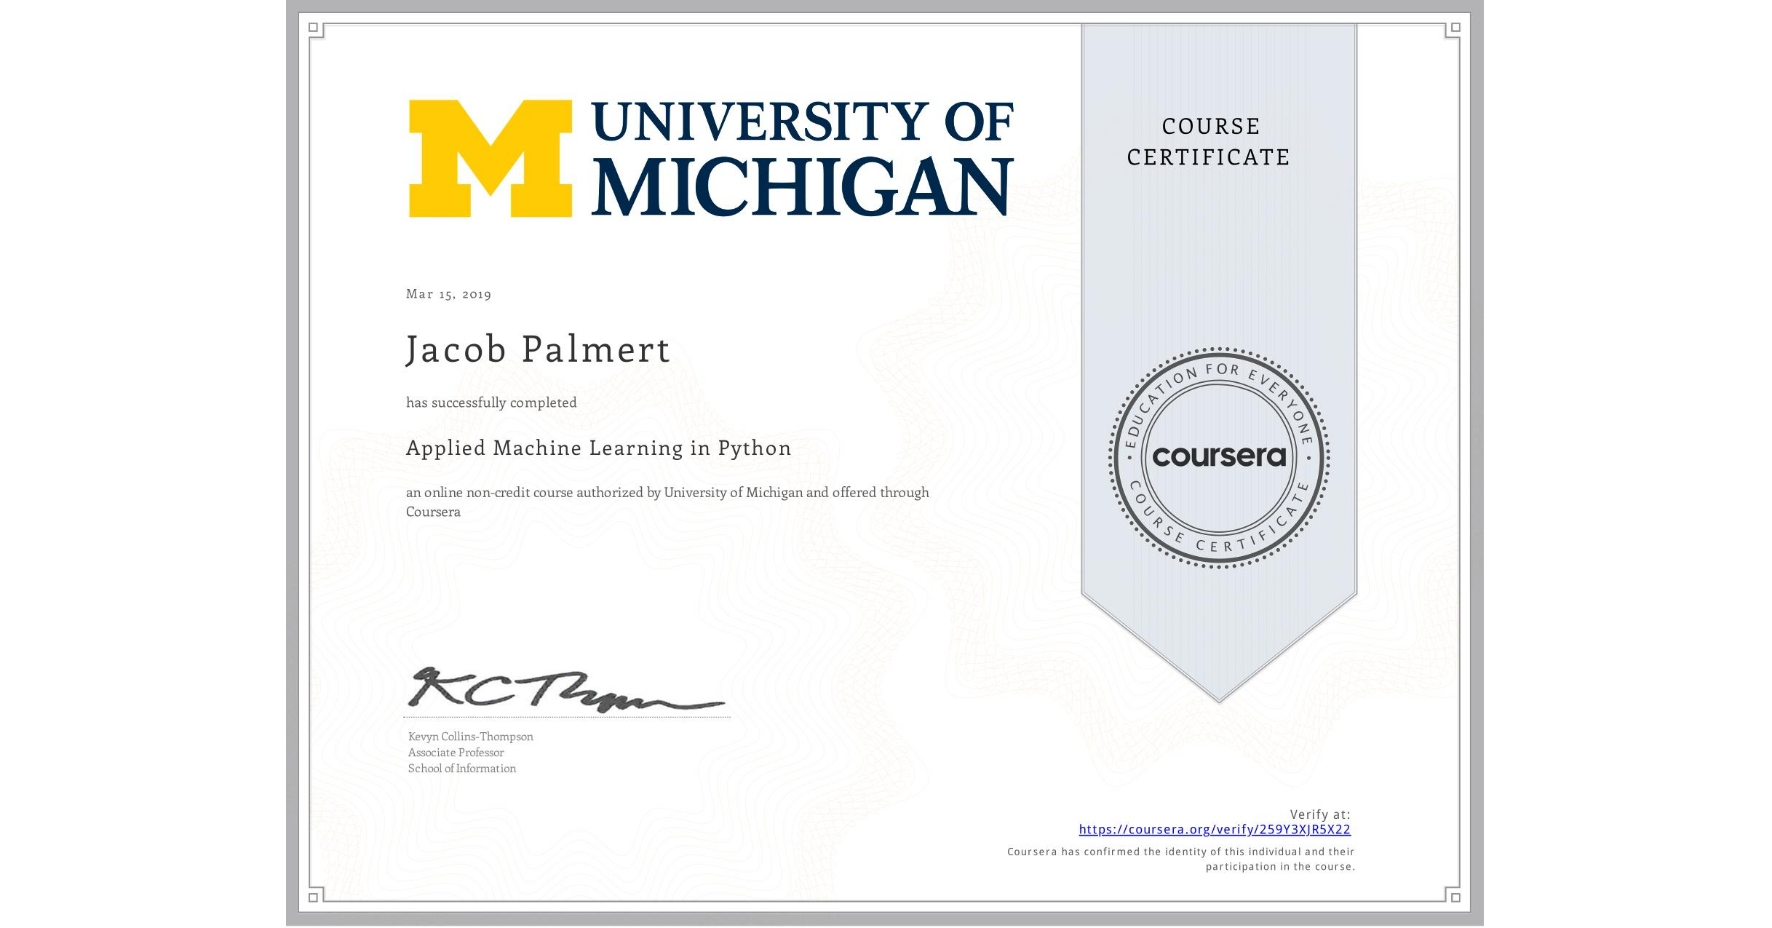 View certificate for Jacob Palmert, Applied Machine Learning in Python, an online non-credit course authorized by University of Michigan and offered through Coursera